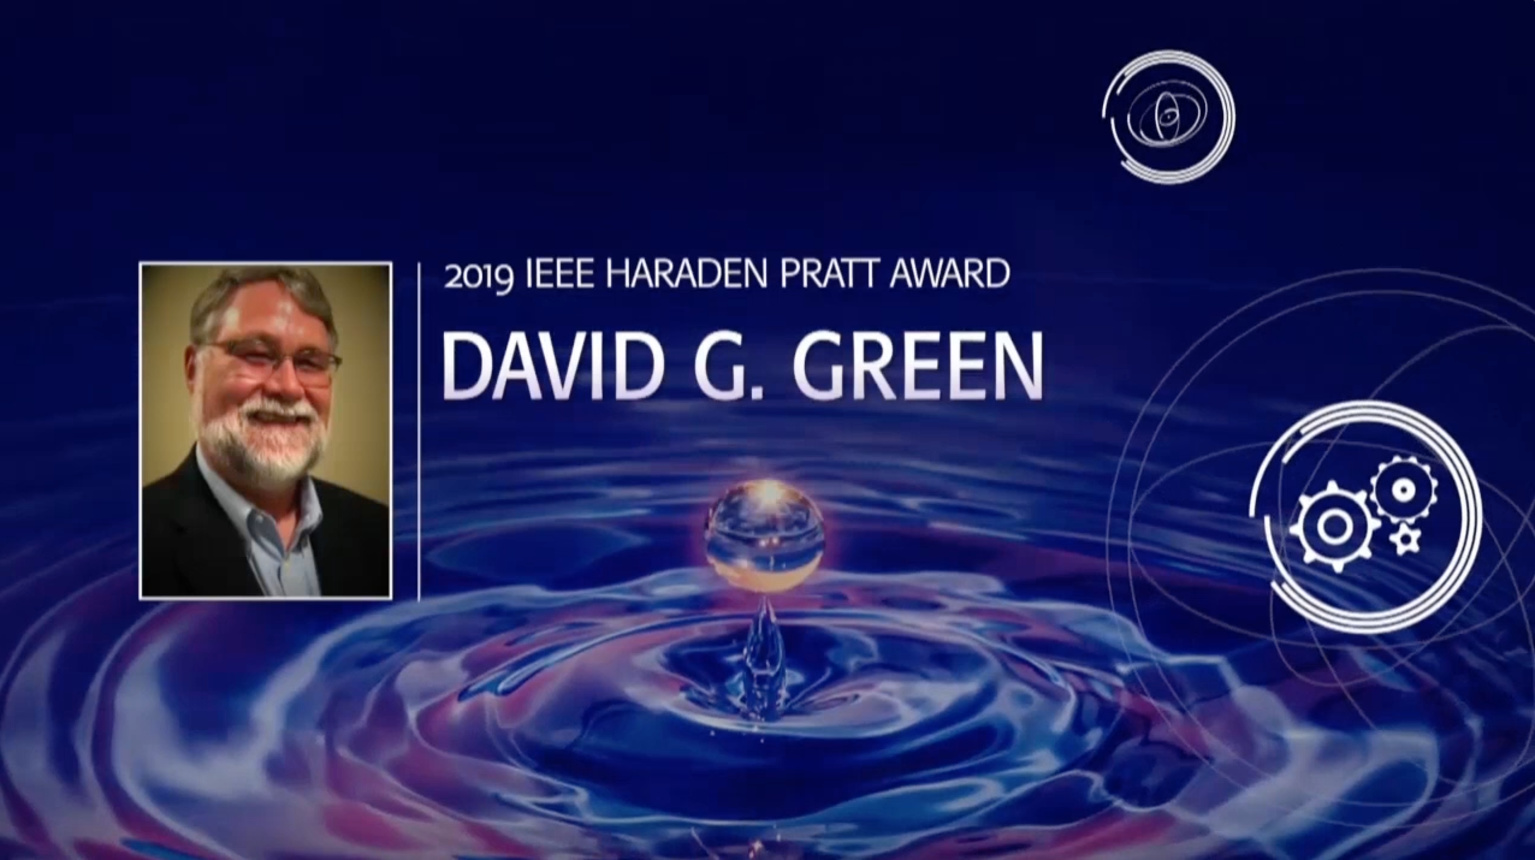 David G. Green - IEEE Haraden Pratt Award, 2019 IEEE Honors Ceremony